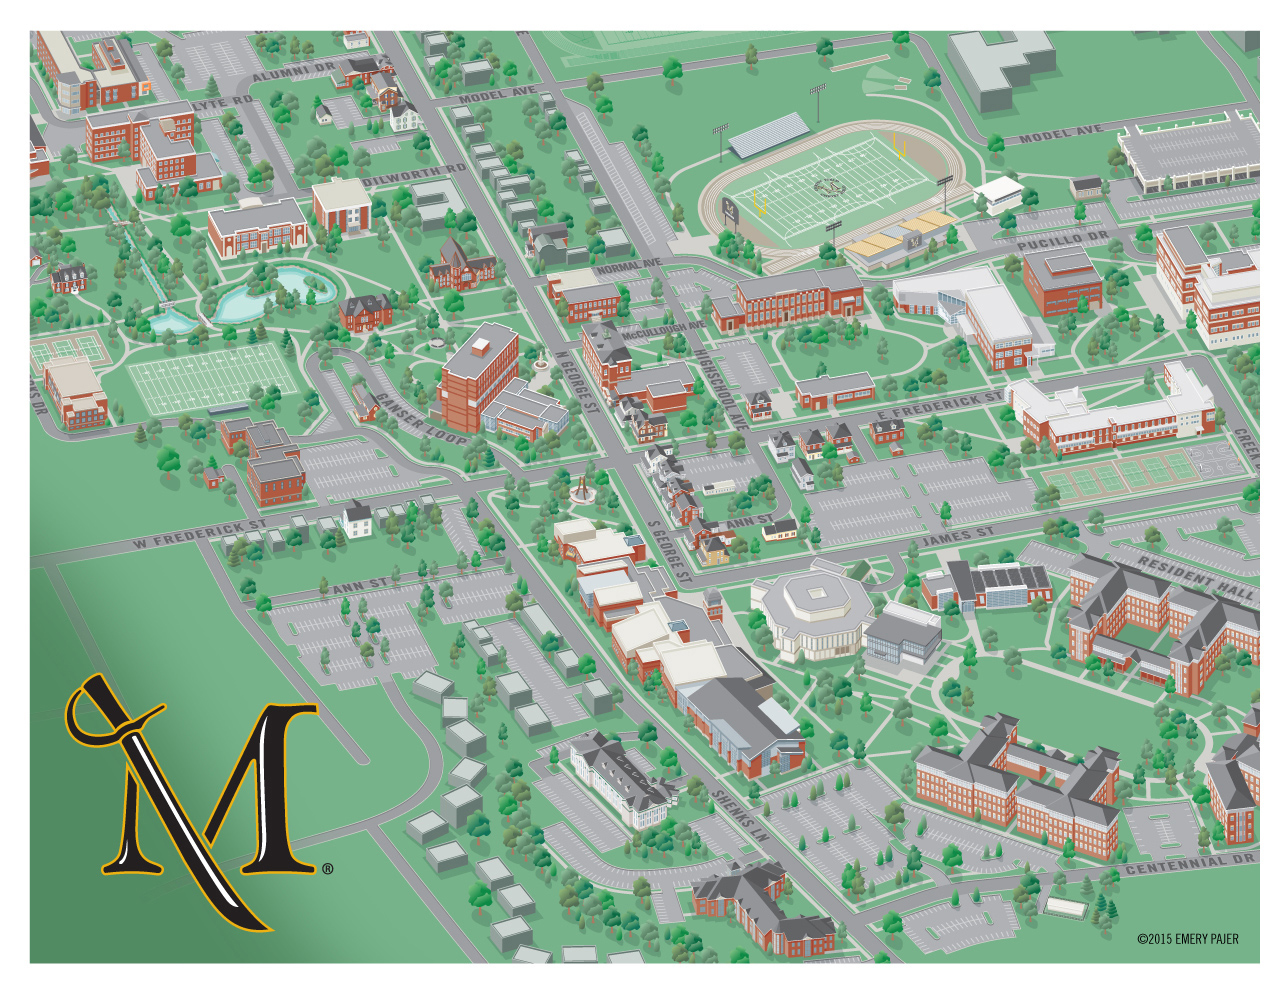 Wayfinding City, Park, and College Campus Map Illustration ... on drawing a city map, create a city map, design a helmet,